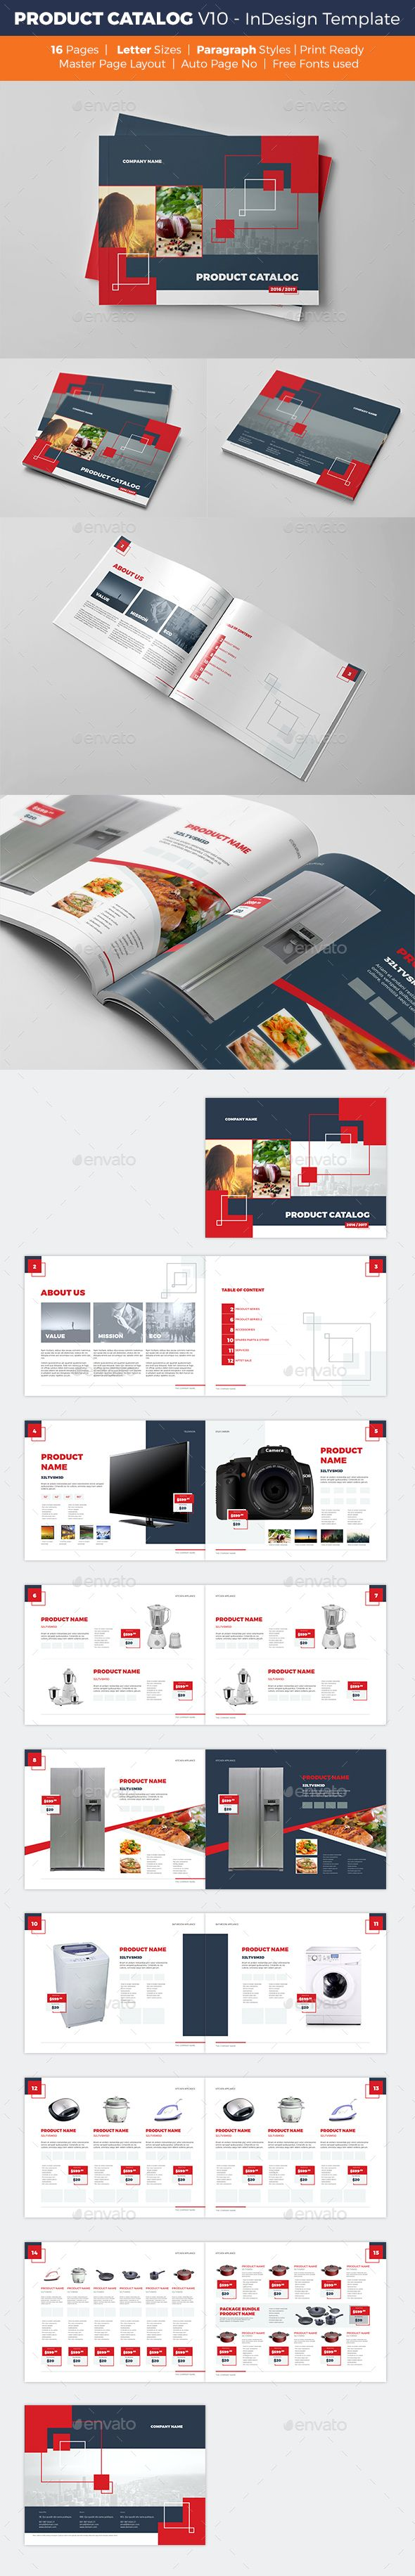 Product Catalog Template - V10